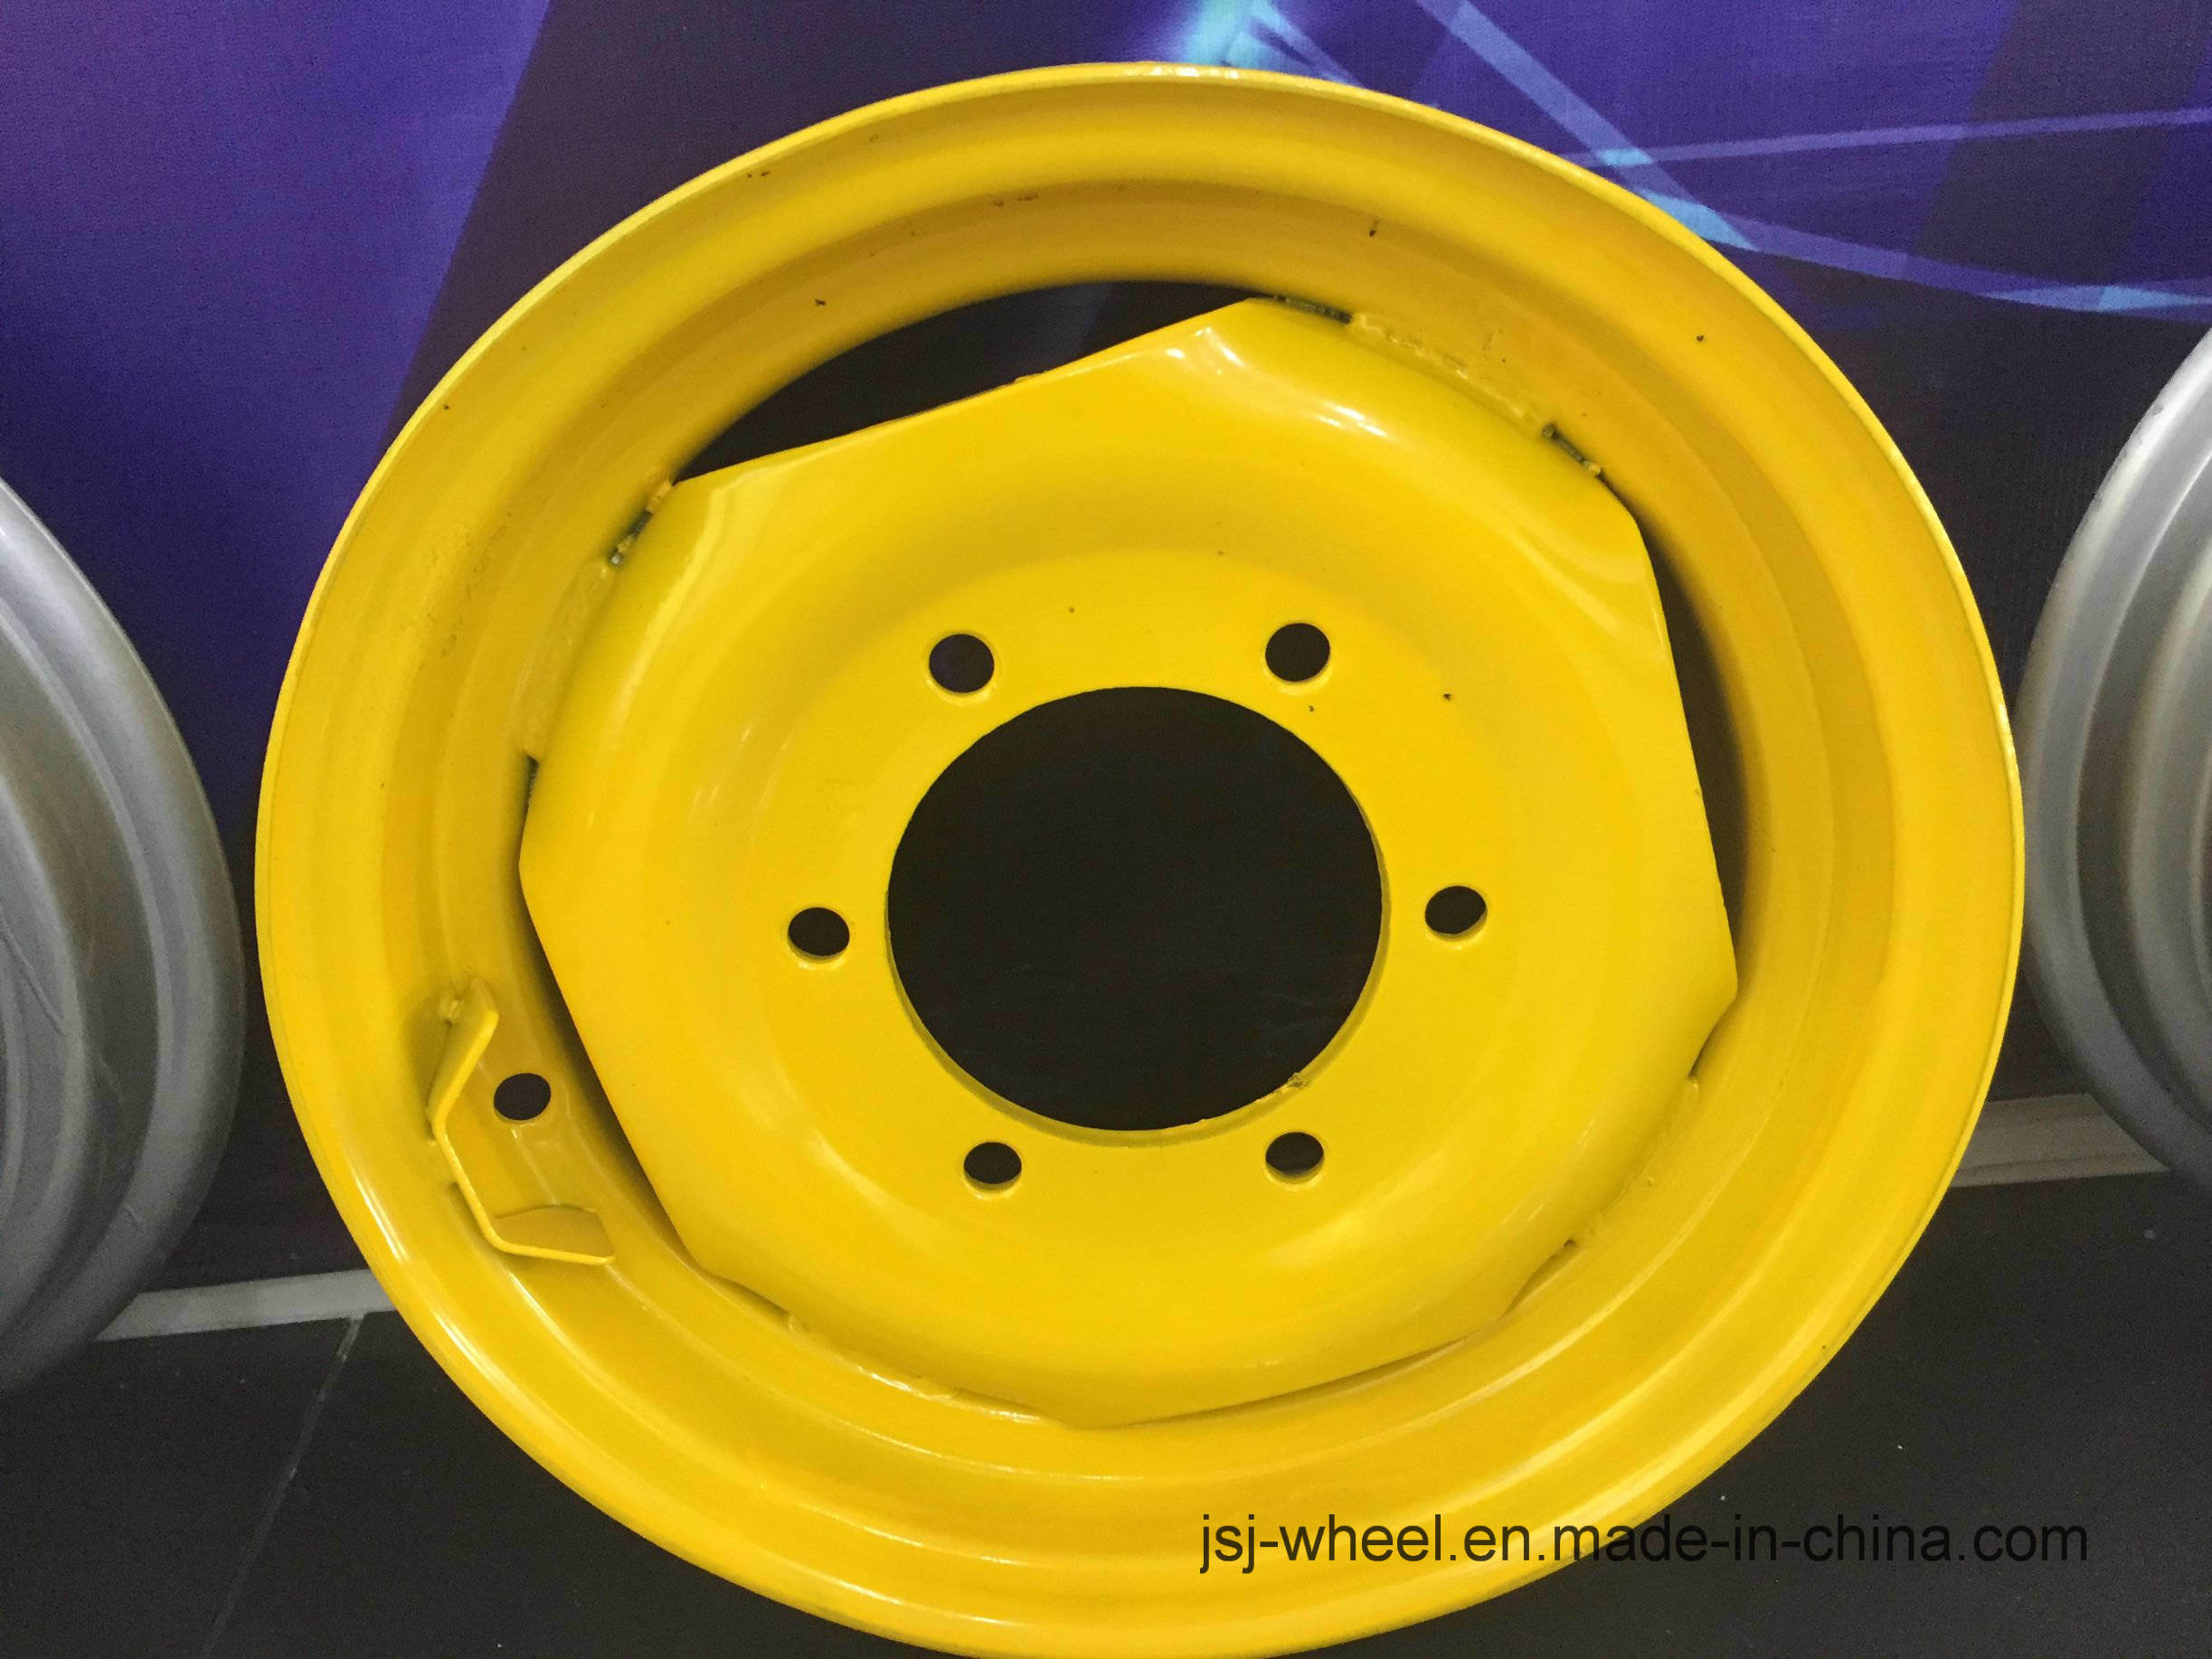 Wheel Rims for Tractor/Harvest/Machineshop Truck/Irrigation System-12